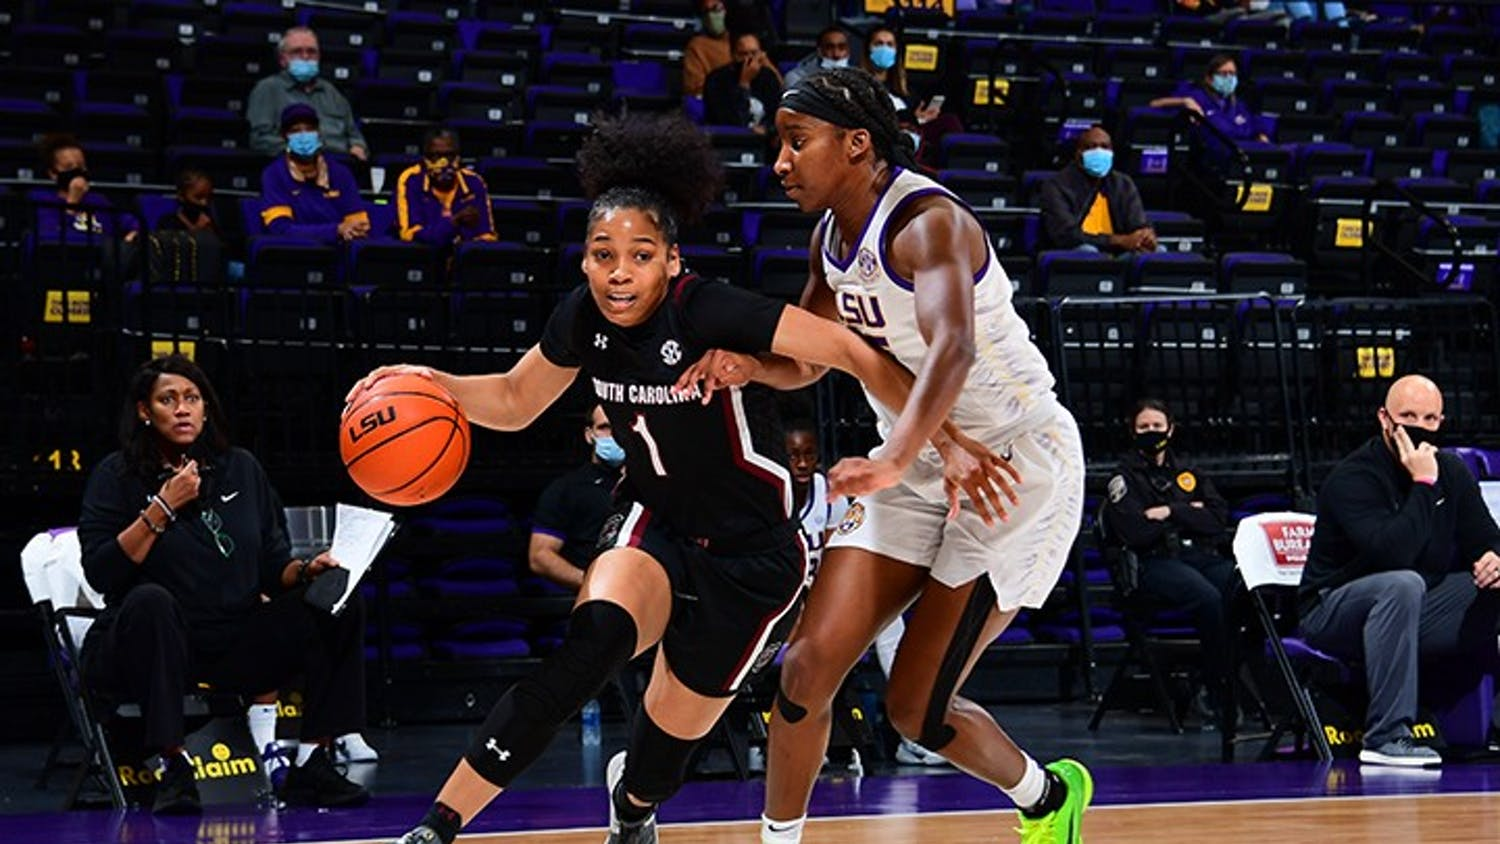 Sophomore guard Zia Cooke drives past a defender in South Carolina's win over LSU Sunday. The Gamecocks remain undefeated in the SEC.